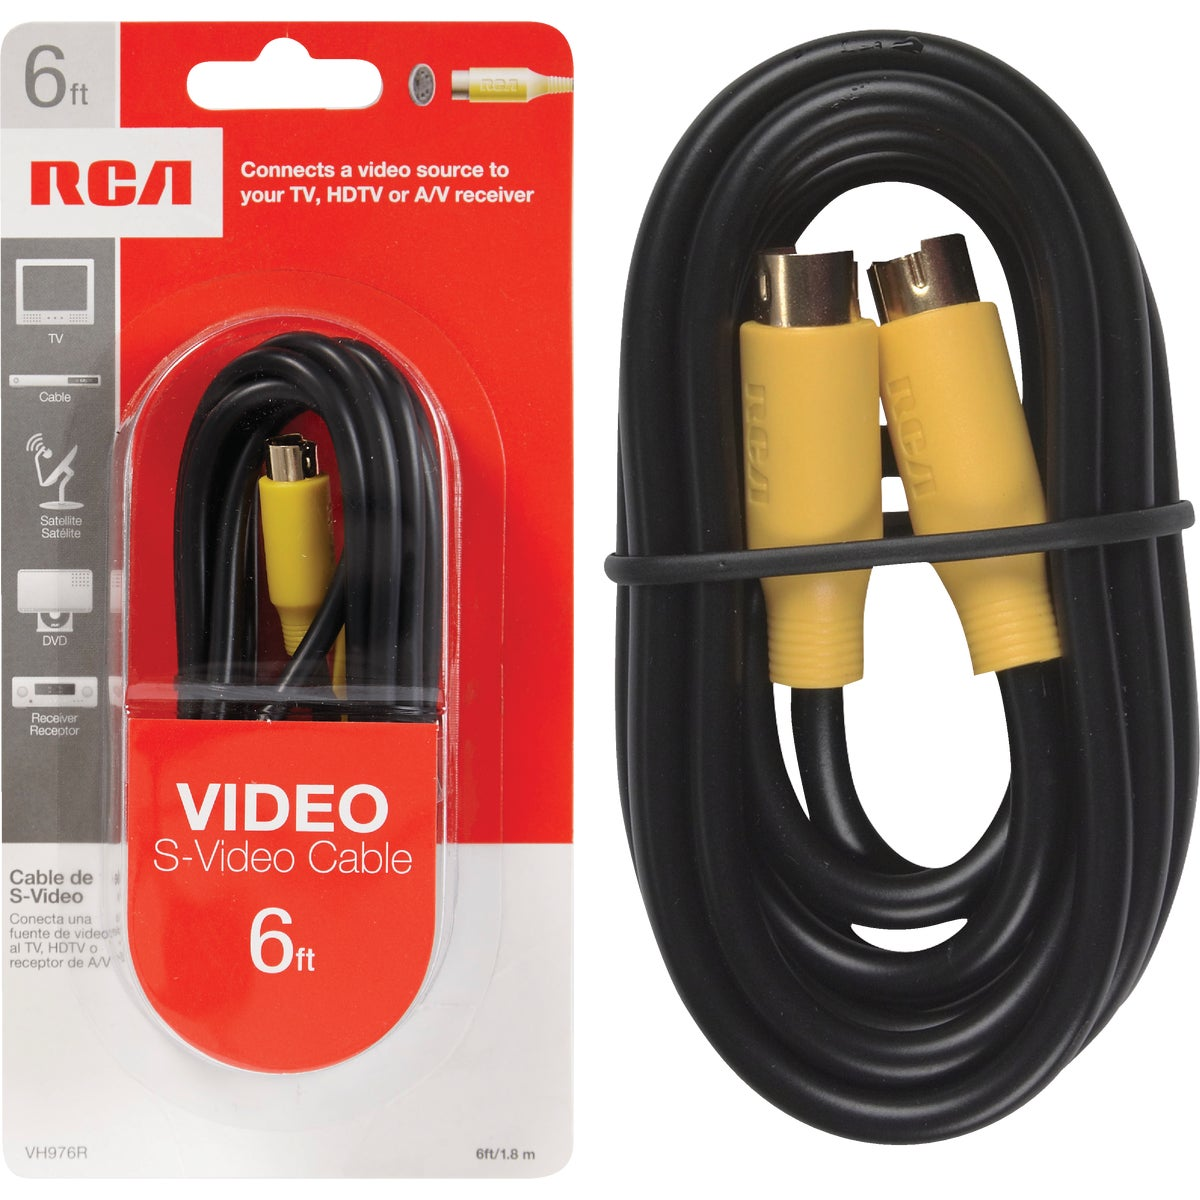 6' S-VIDEO CABLE - VH976R by Audiovox Accessories